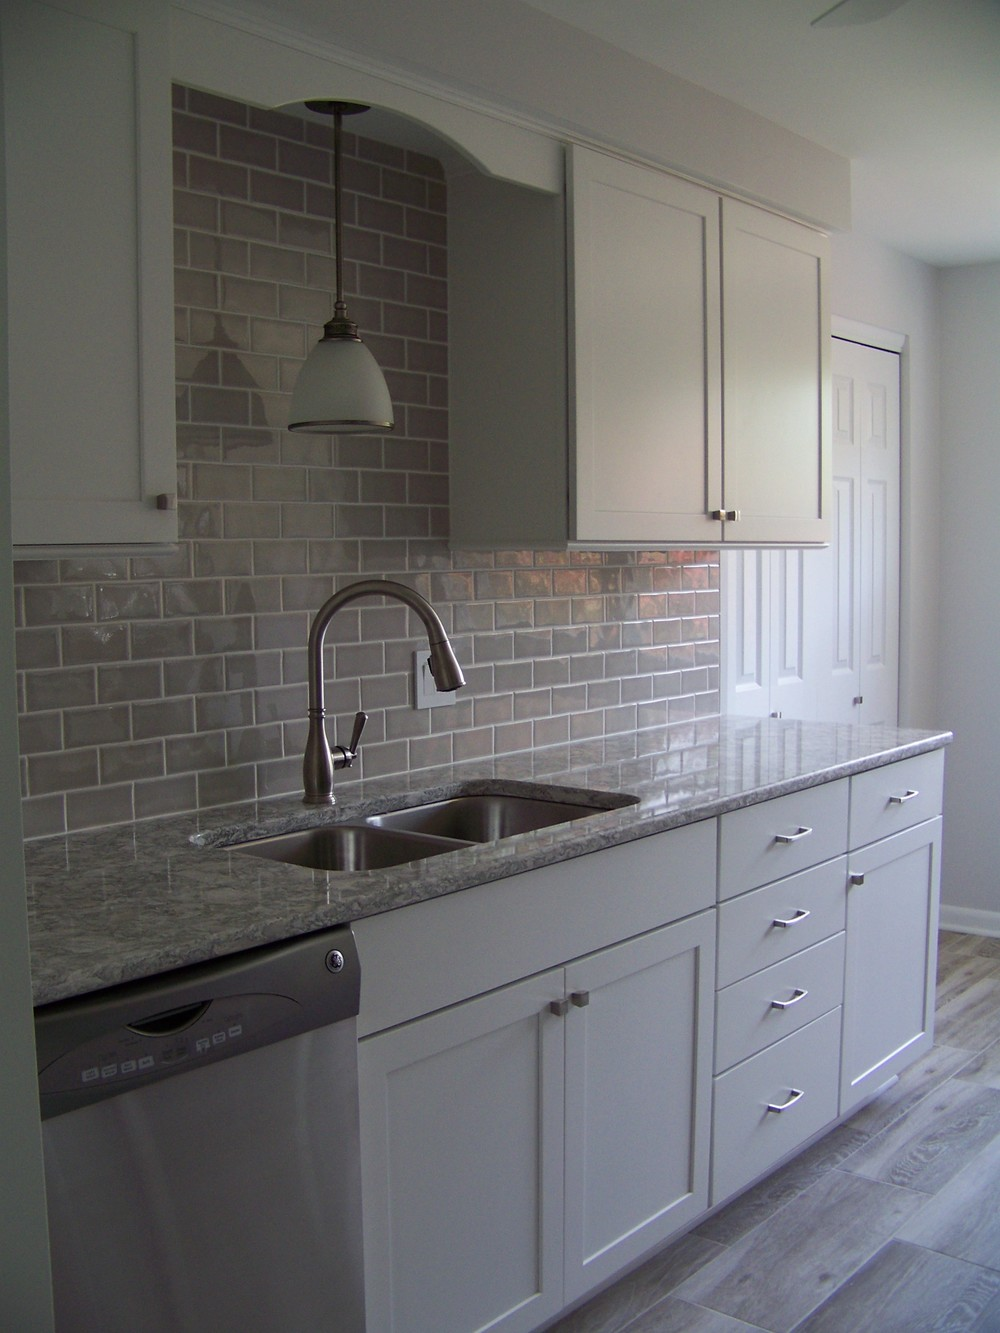 Diamond Vibe Cabinets, Cambria Quartz Tops, Subway Style Backsplash.